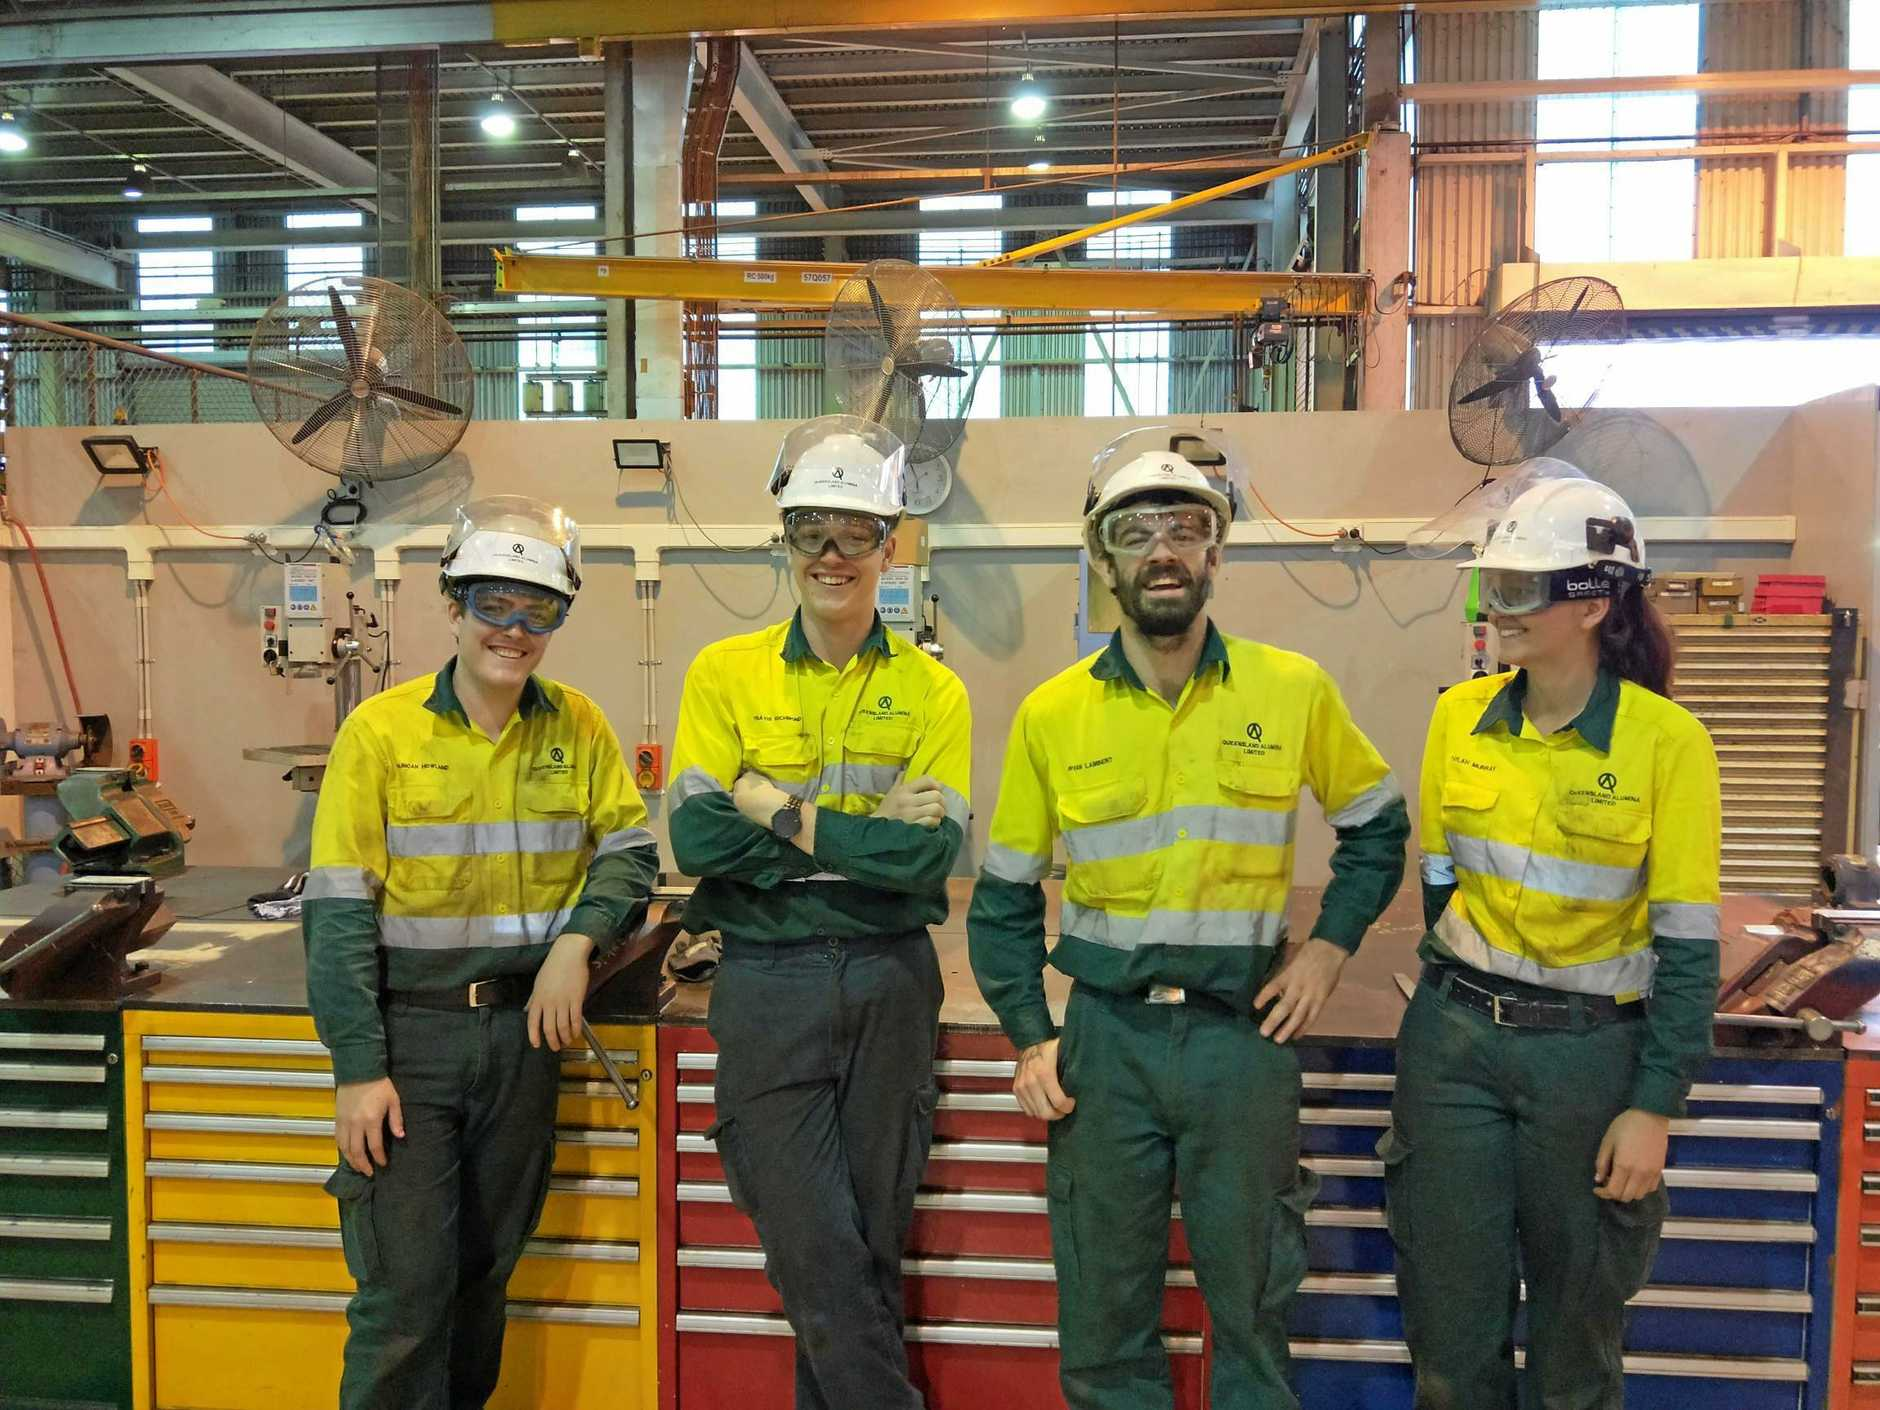 JOIN THE TEAM: The QAL 2020 Apprenticeship Program applications are now open. Successful applicants will join apprentices like Duncan Howland, Travis Richmond, Ryann Lambert and Taylah Murray.